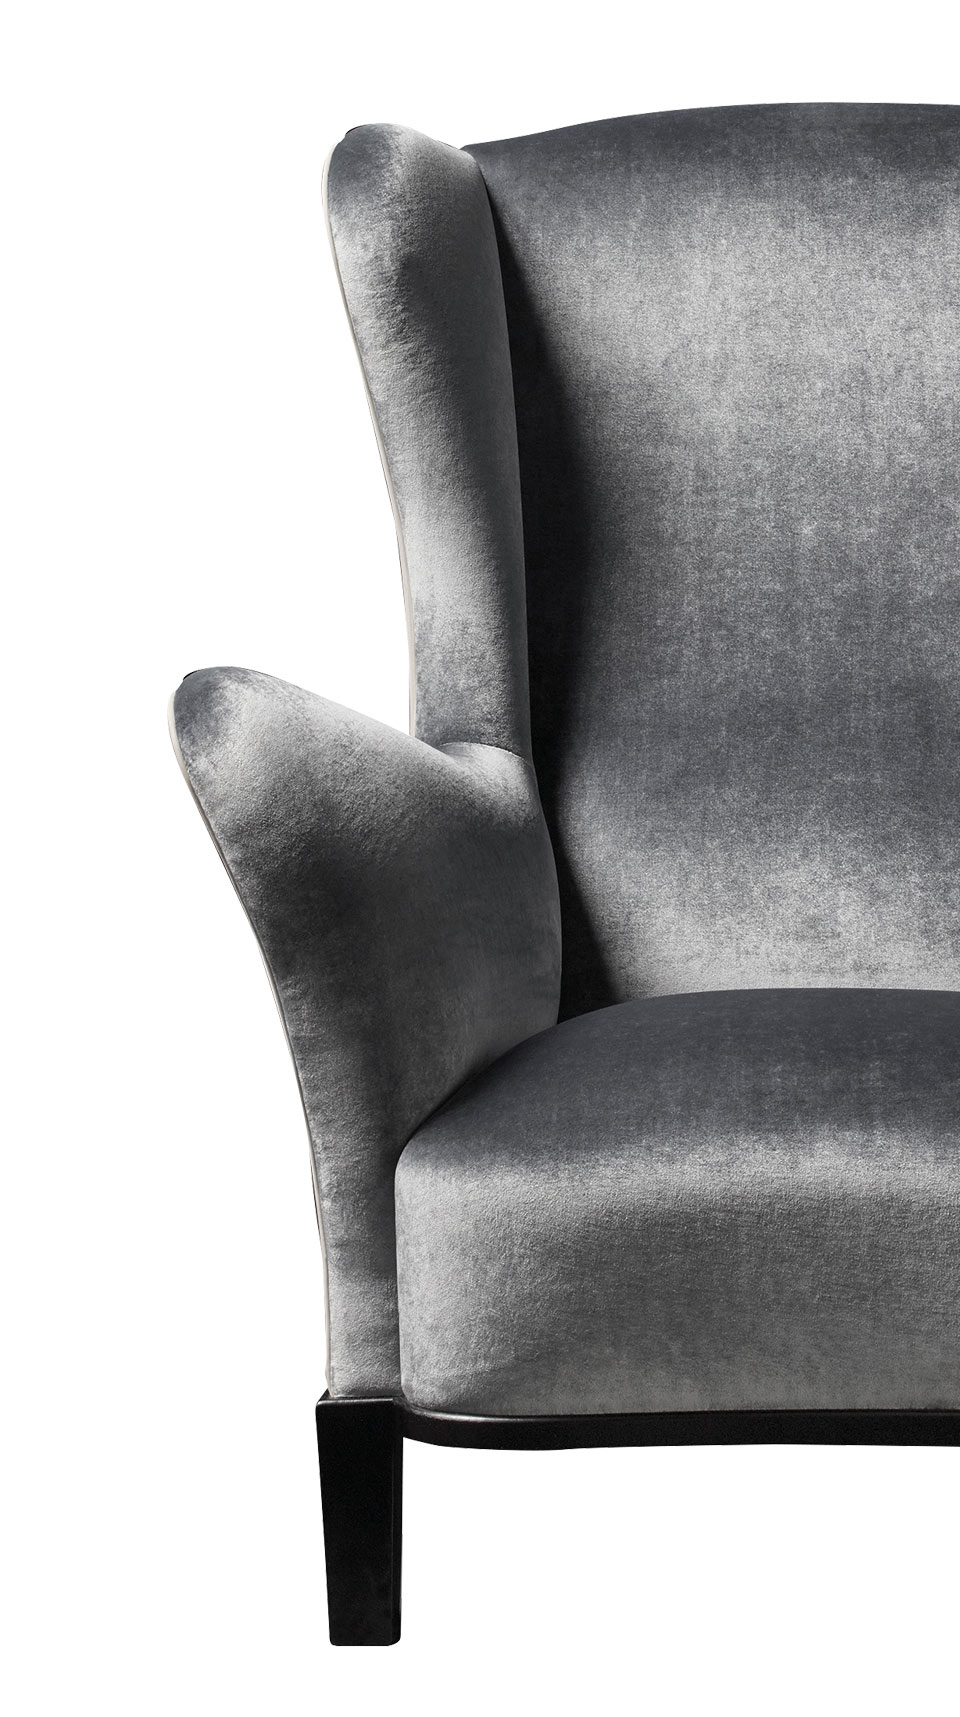 Detail of Bluette, a wooden armchair covered in fabric or leather, from Promemoria's Night Tales collection | Promemoria